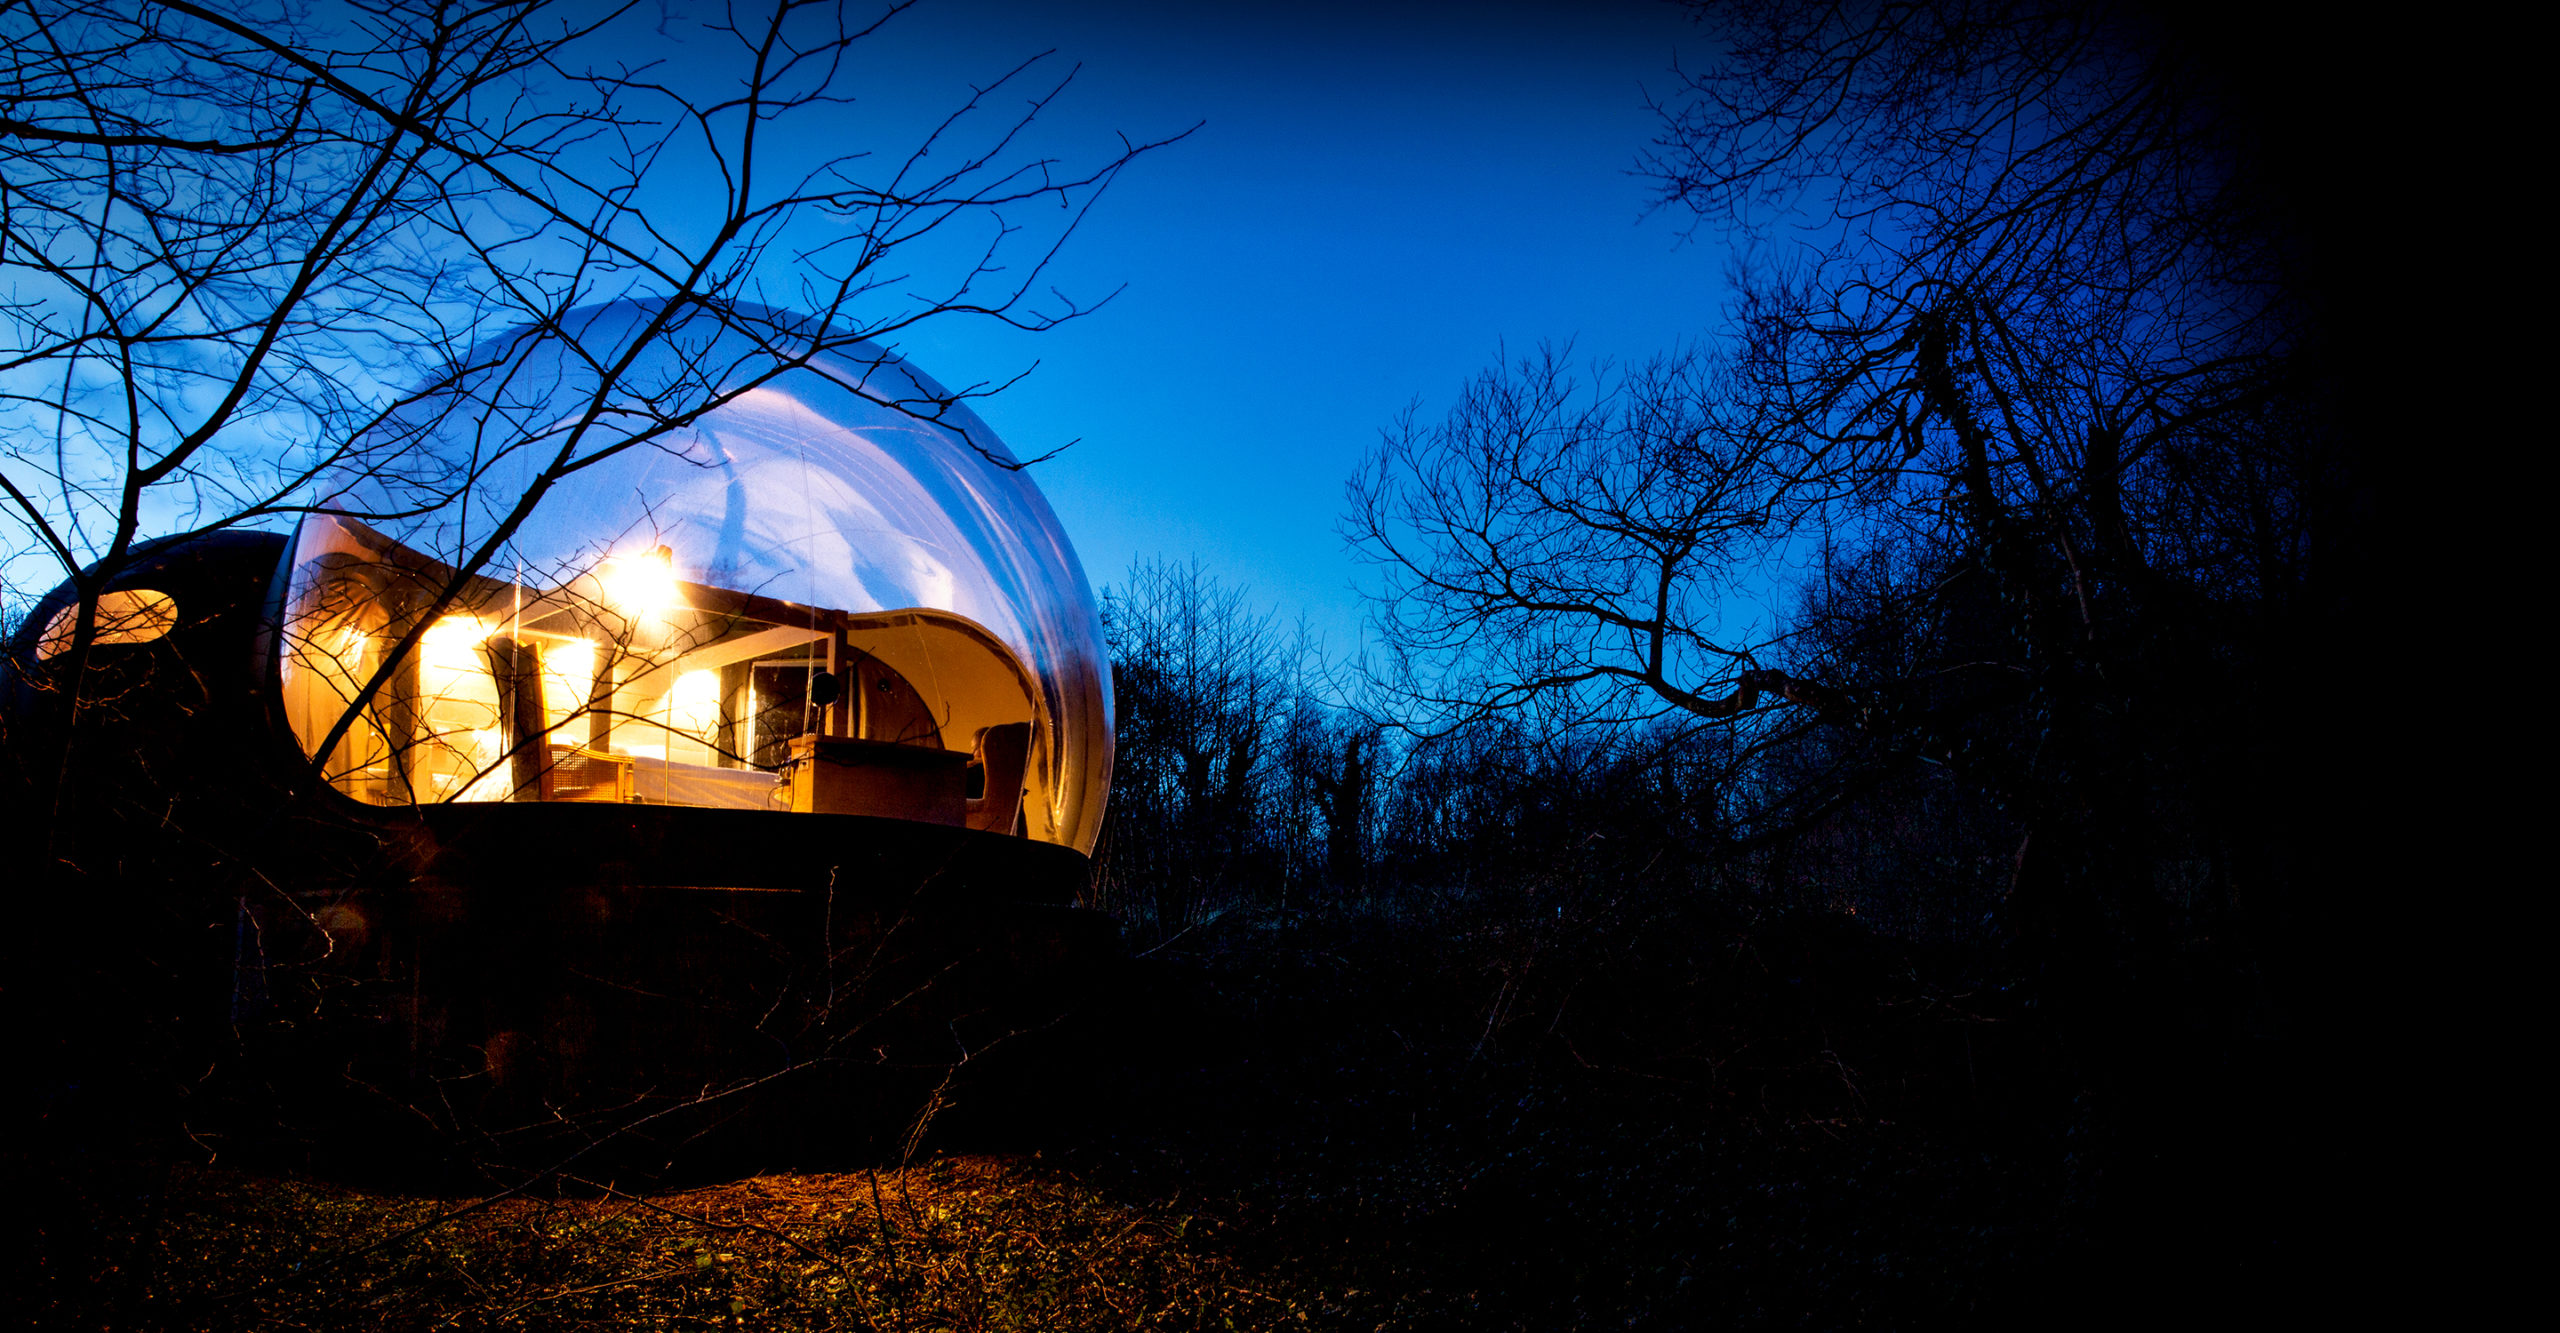 Finn Lough bubble domes Fermanagh. Image by Sean Flynn, The Commercial Photographer Ireland